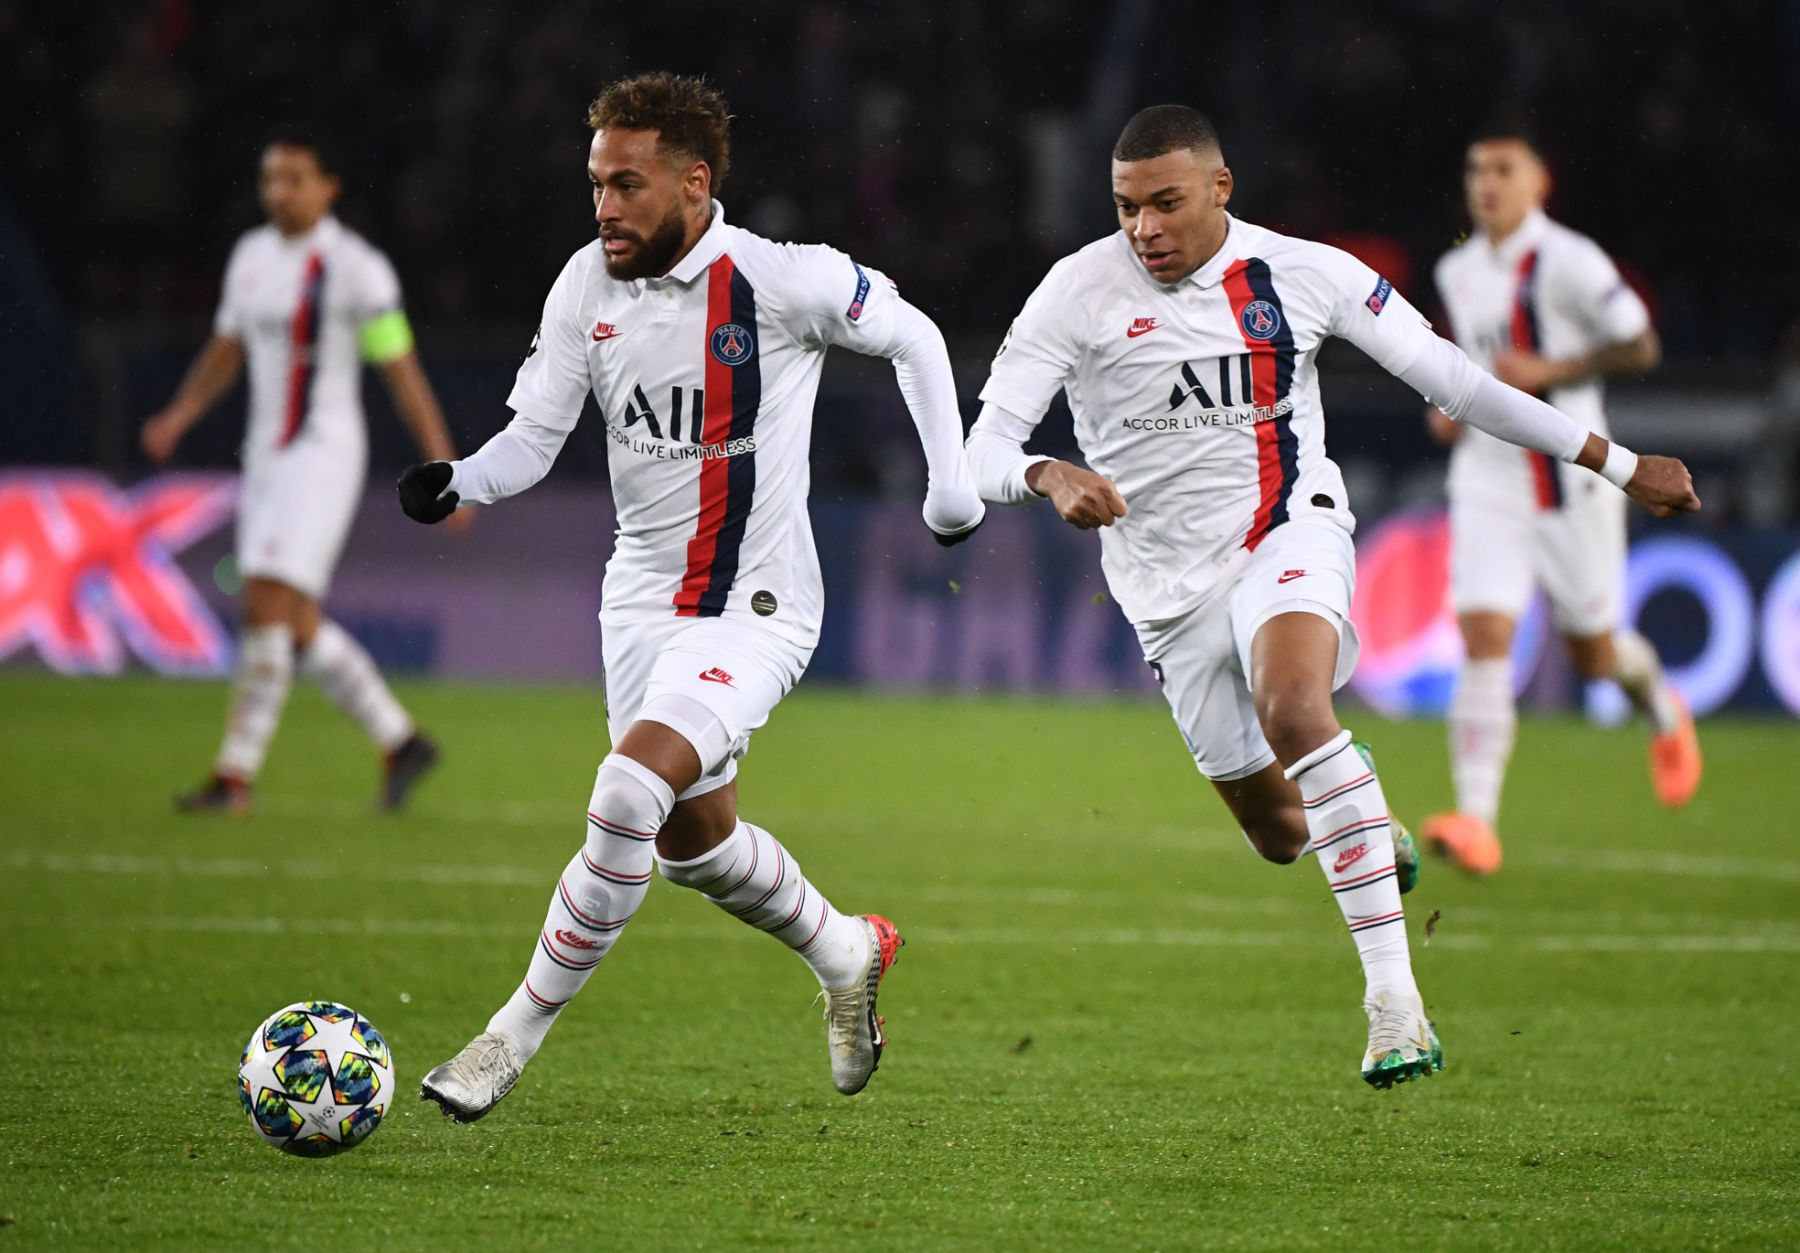 Image Result For Psg Vs Galatasaray